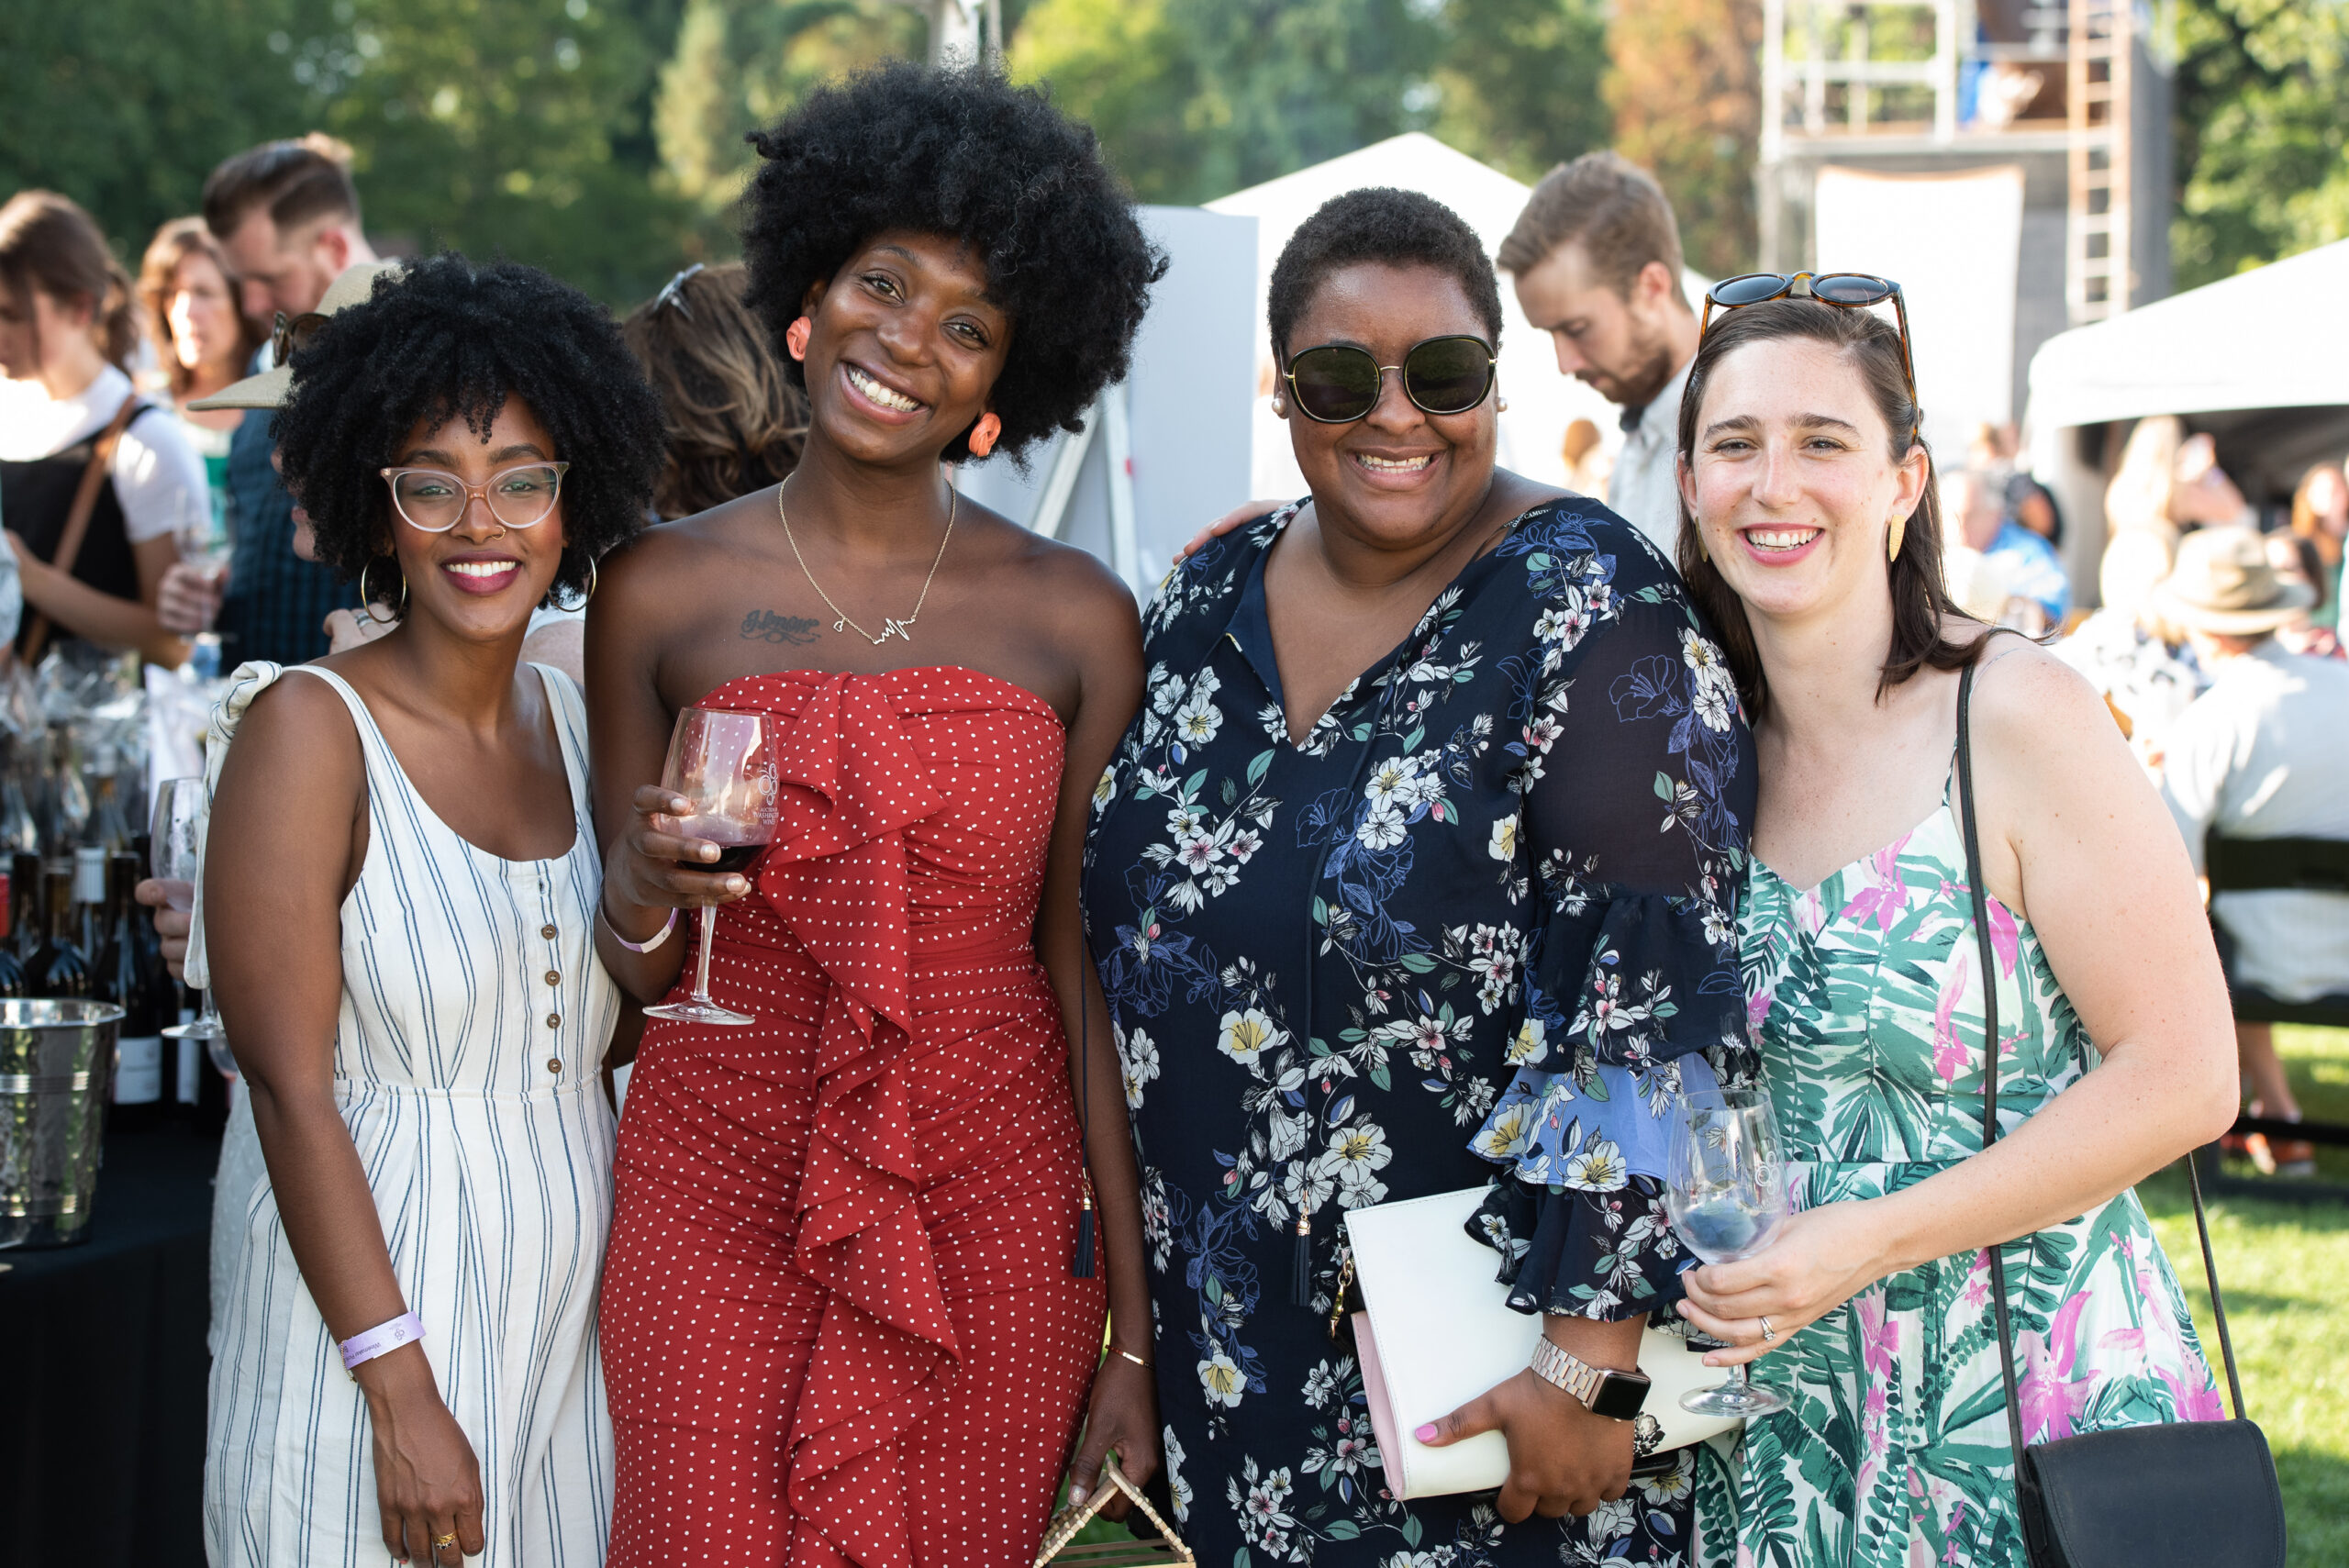 Four women stand together and smile. Two of them hold glasses of wine and they are wearing festive summer dresses. There are people and tents behind them.